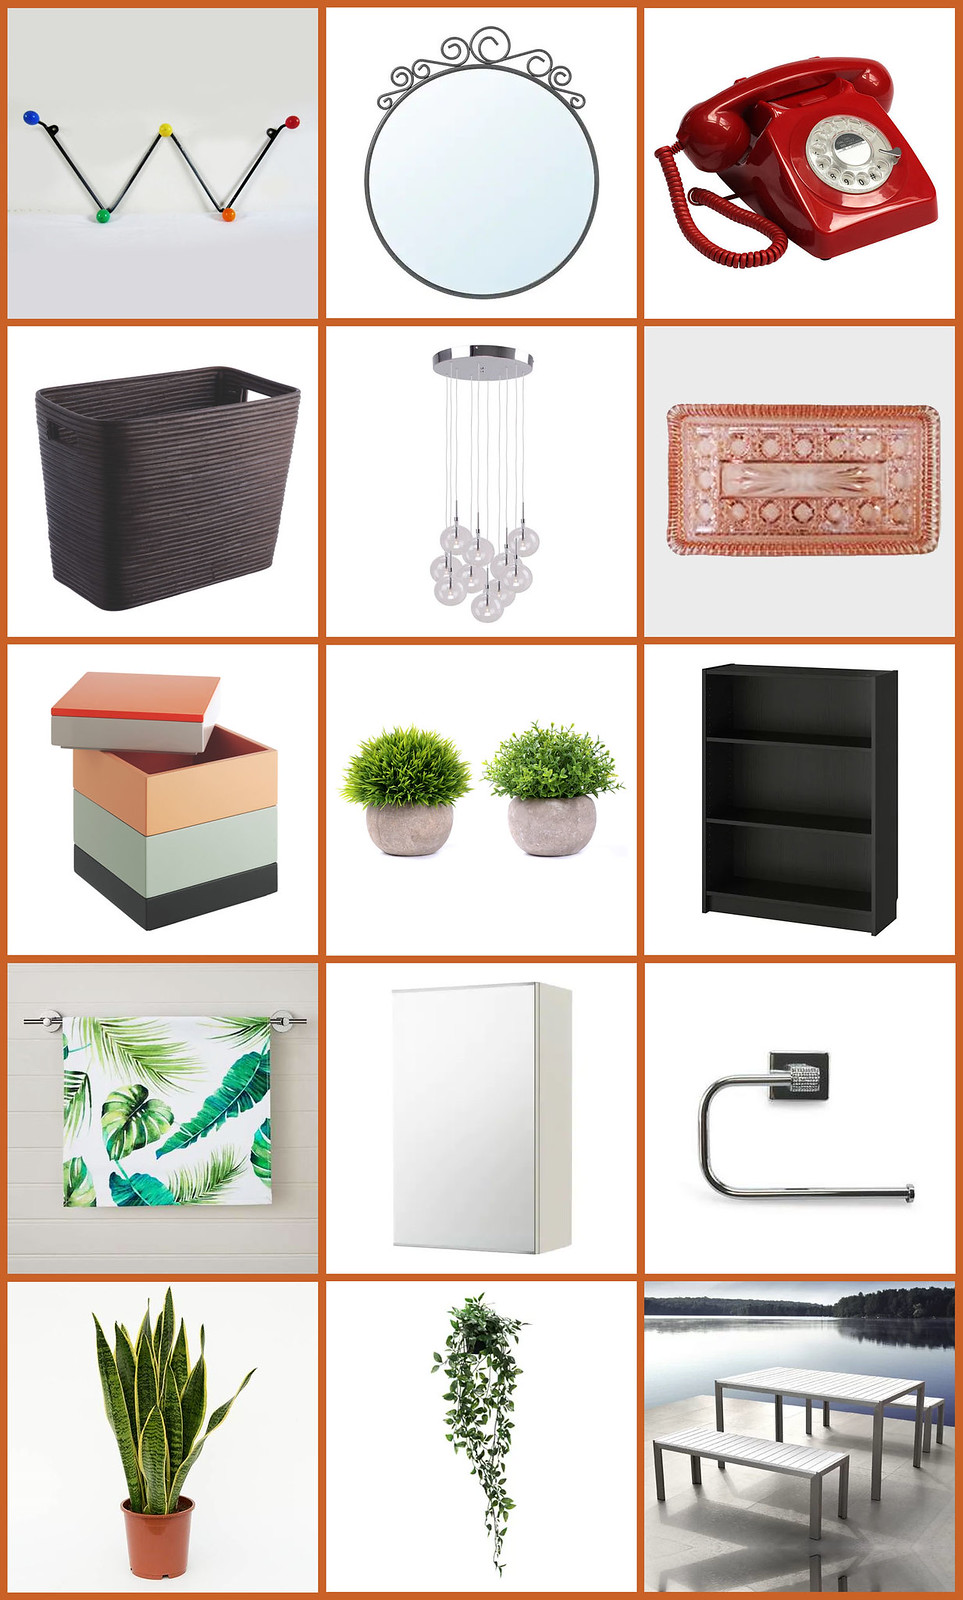 All the Mid-Century Modern Homewares We've Bought For Our New House: Hallway, Bathroom, Garden | Not Dressed As Lamb